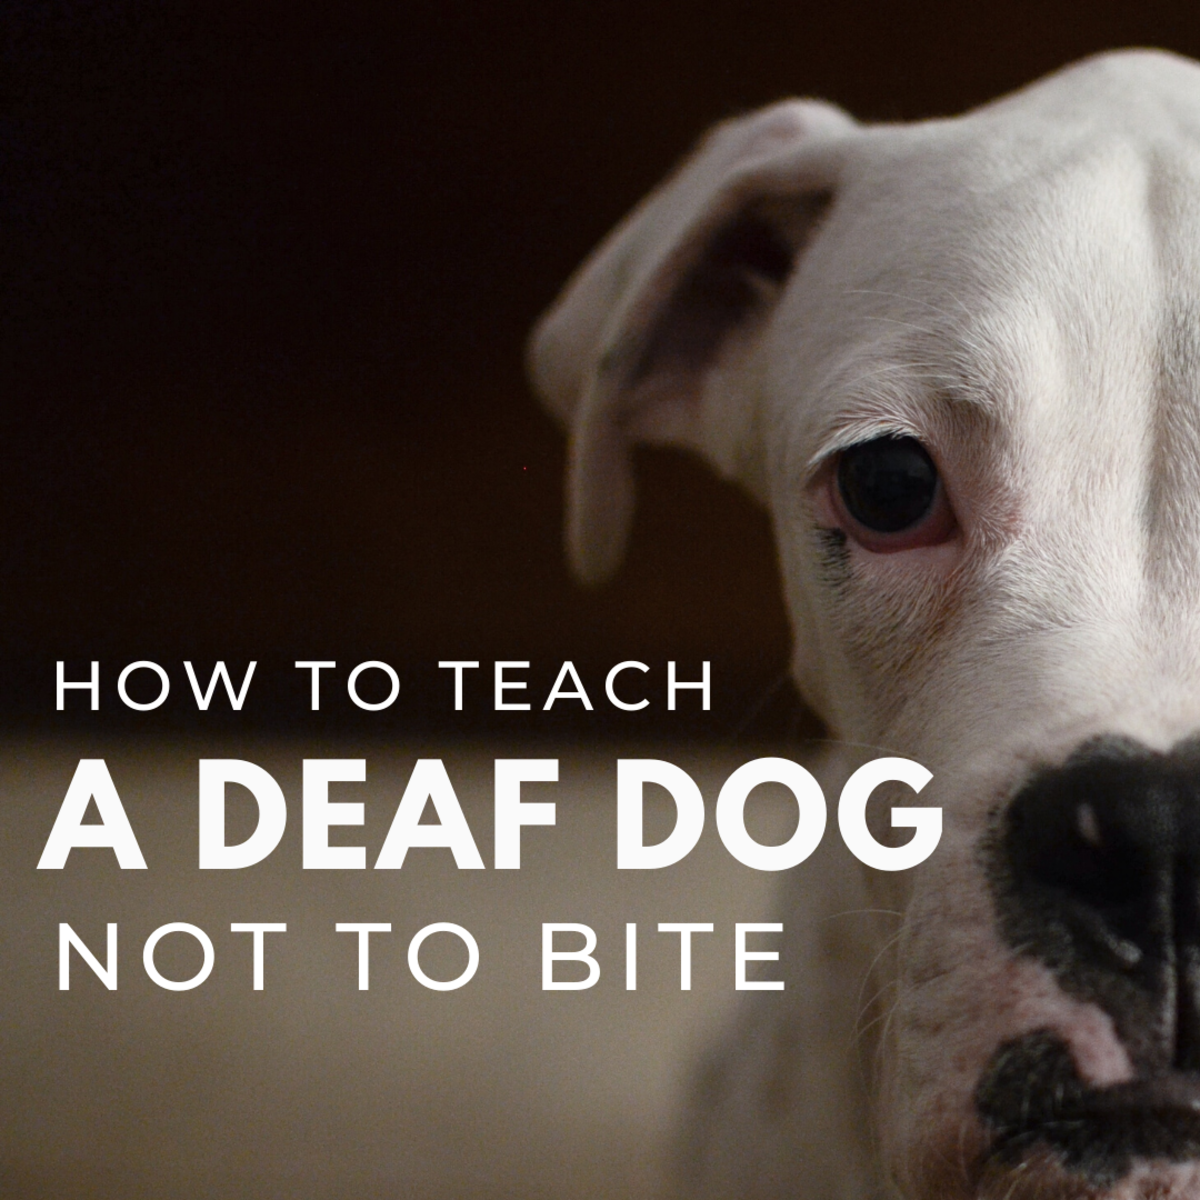 How to Teach Your Deaf Dog Not to Bite